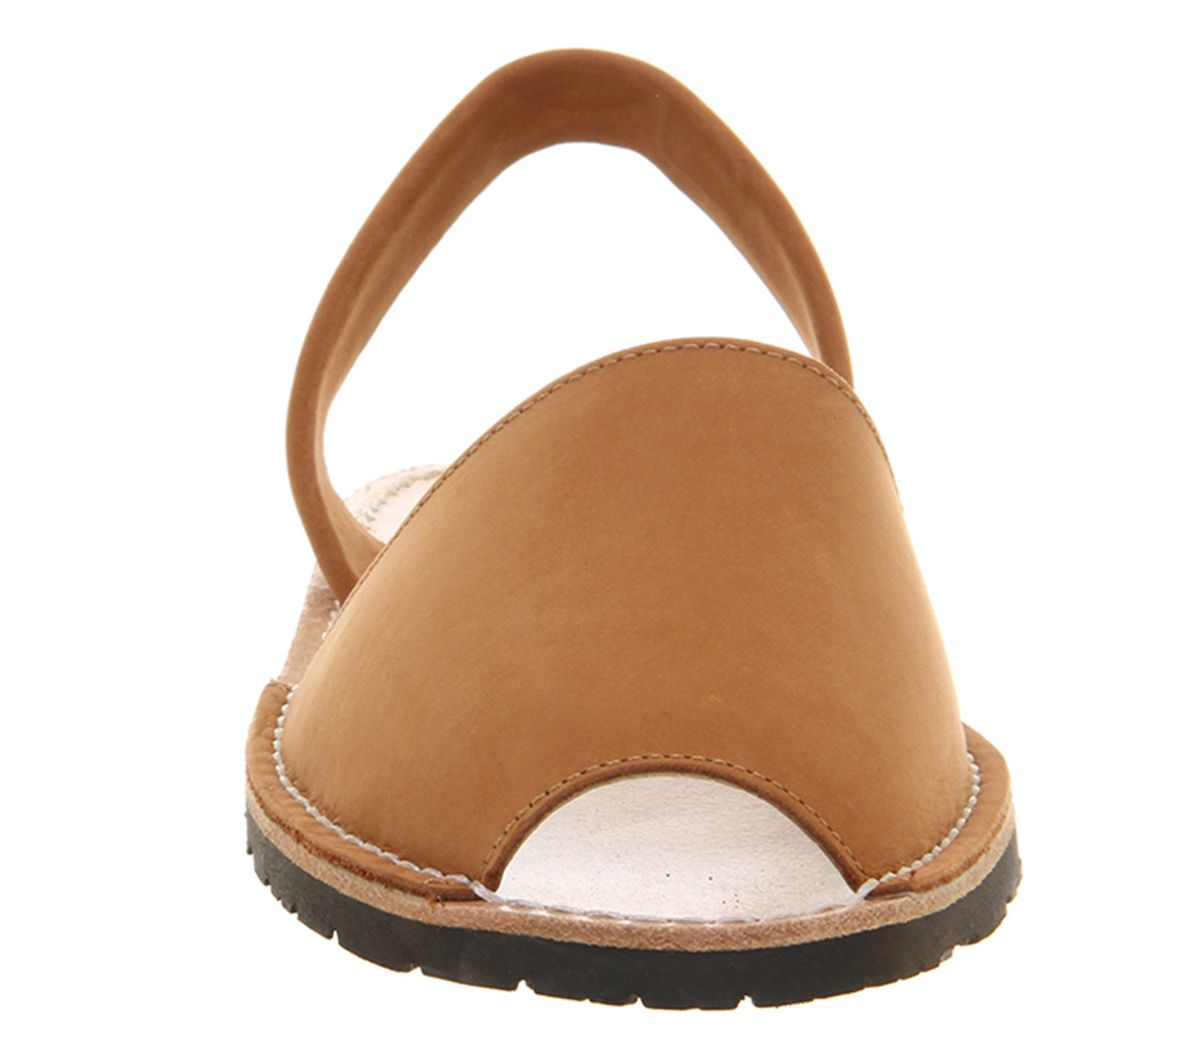 Womens-Solillas-Solillas-Sandals-Tan-Leather-Sandals thumbnail 10